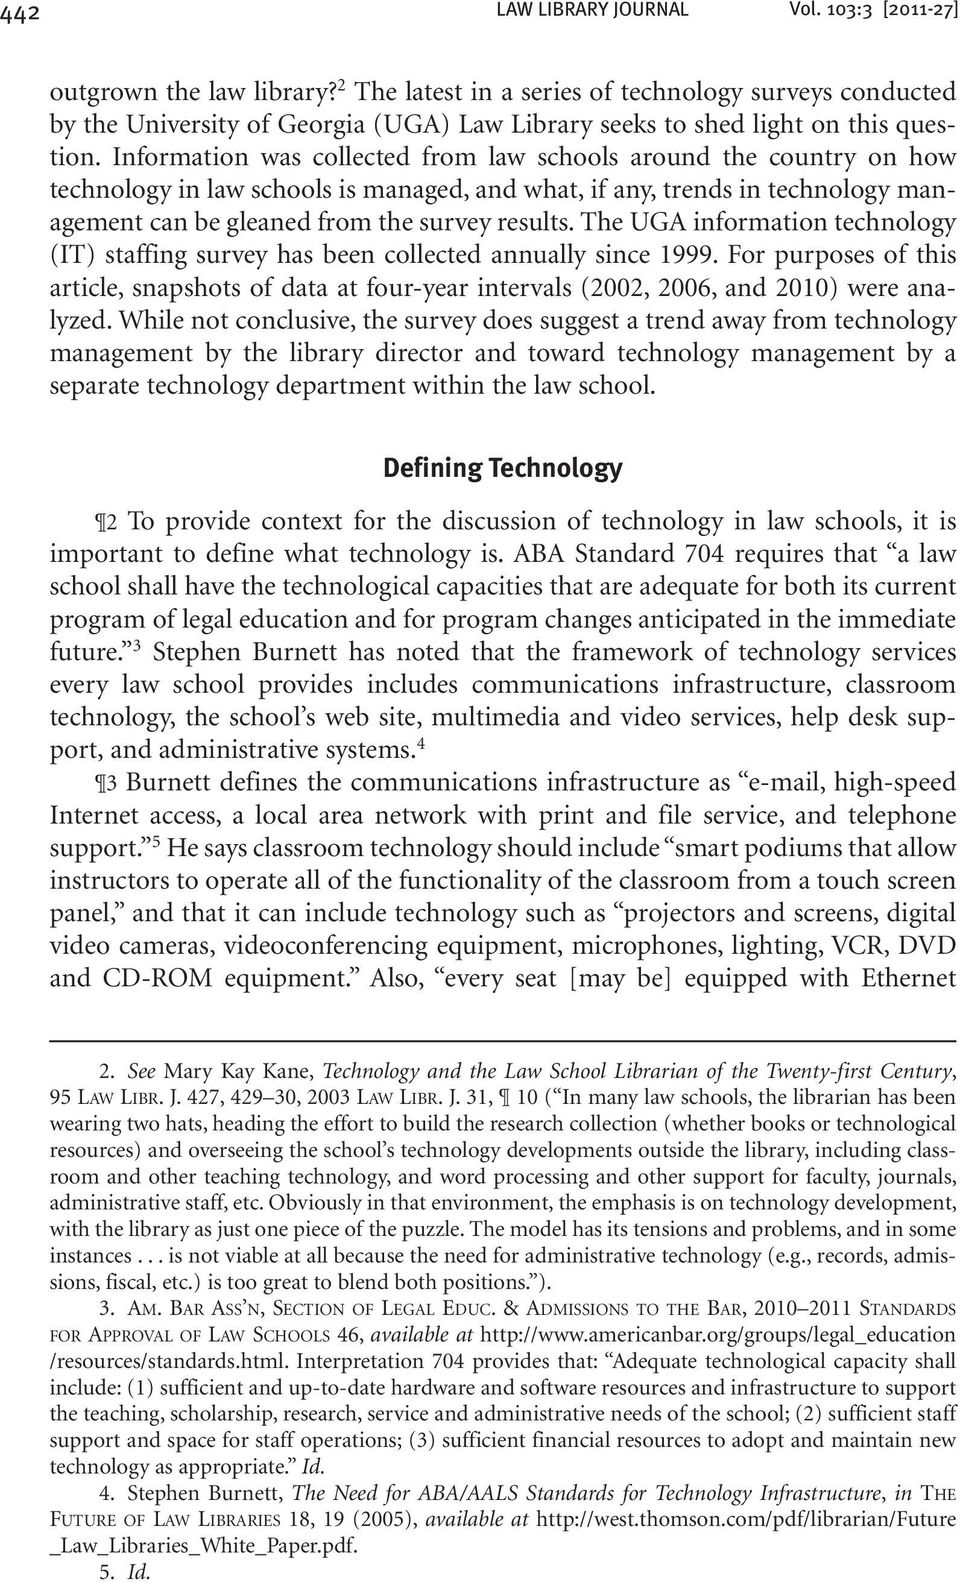 Information was collected from law schools around the country on how technology in law schools is managed, and what, if any, trends in technology management can be gleaned from the survey results.